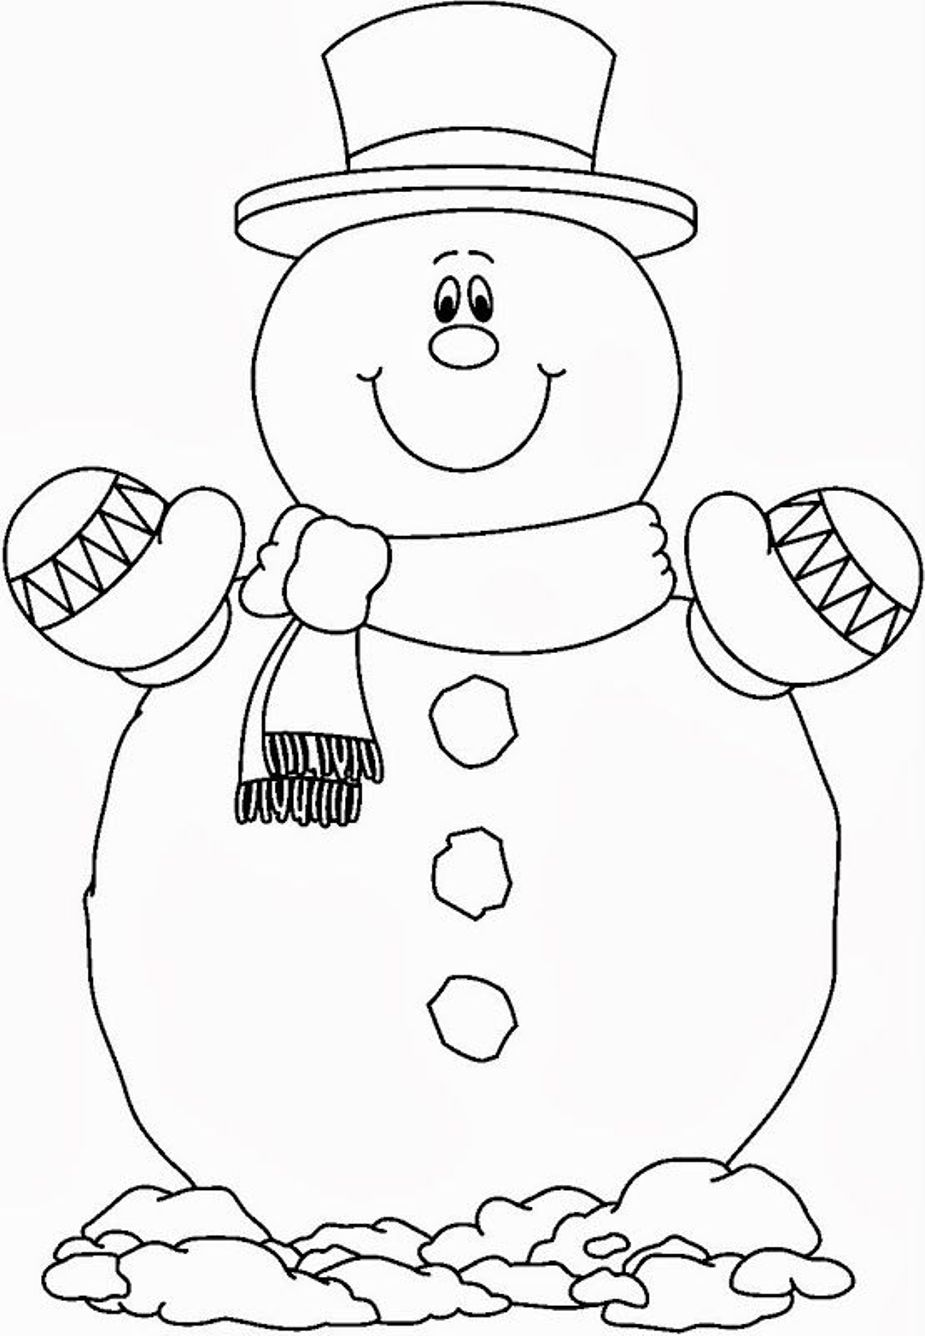 Snowman coloring pages to download and print for free for Coloring pages of snowman